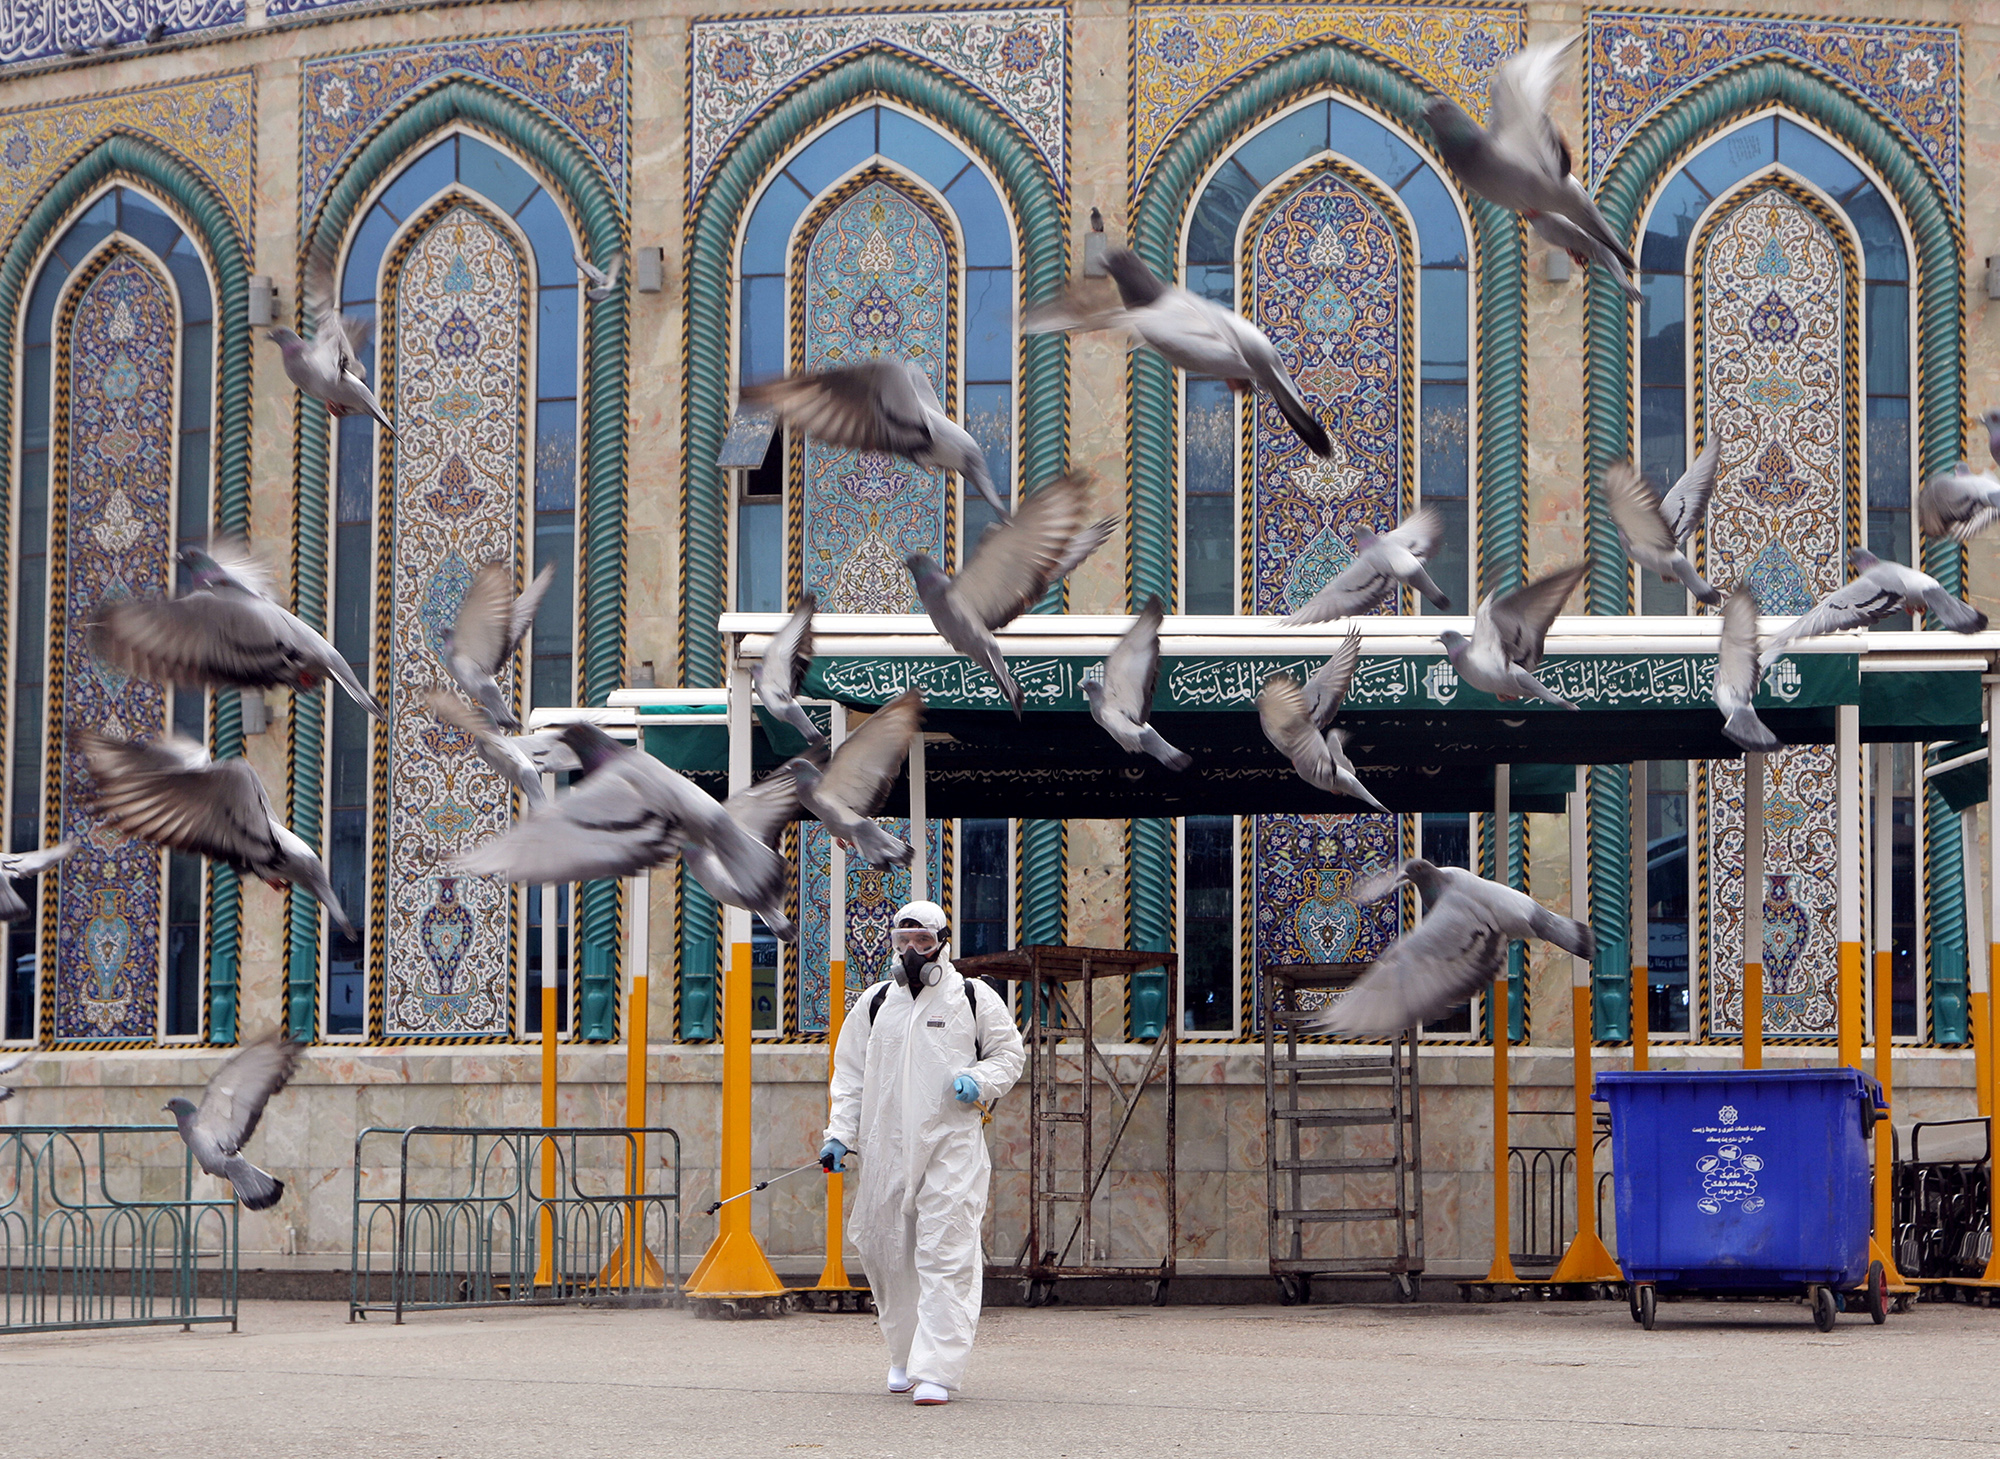 DATE IMPORTED:March 15, 2020A worker in a protective suit sprays disinfectants near Imam Abbas shrine as a precaution against the coronavirus, following the outbreak, in the holy city of Kerbala, Iraq March 15, 2020.REUTERS/Abdullah Dhiaa Al-deen TPX IMAGES OF THE DAY